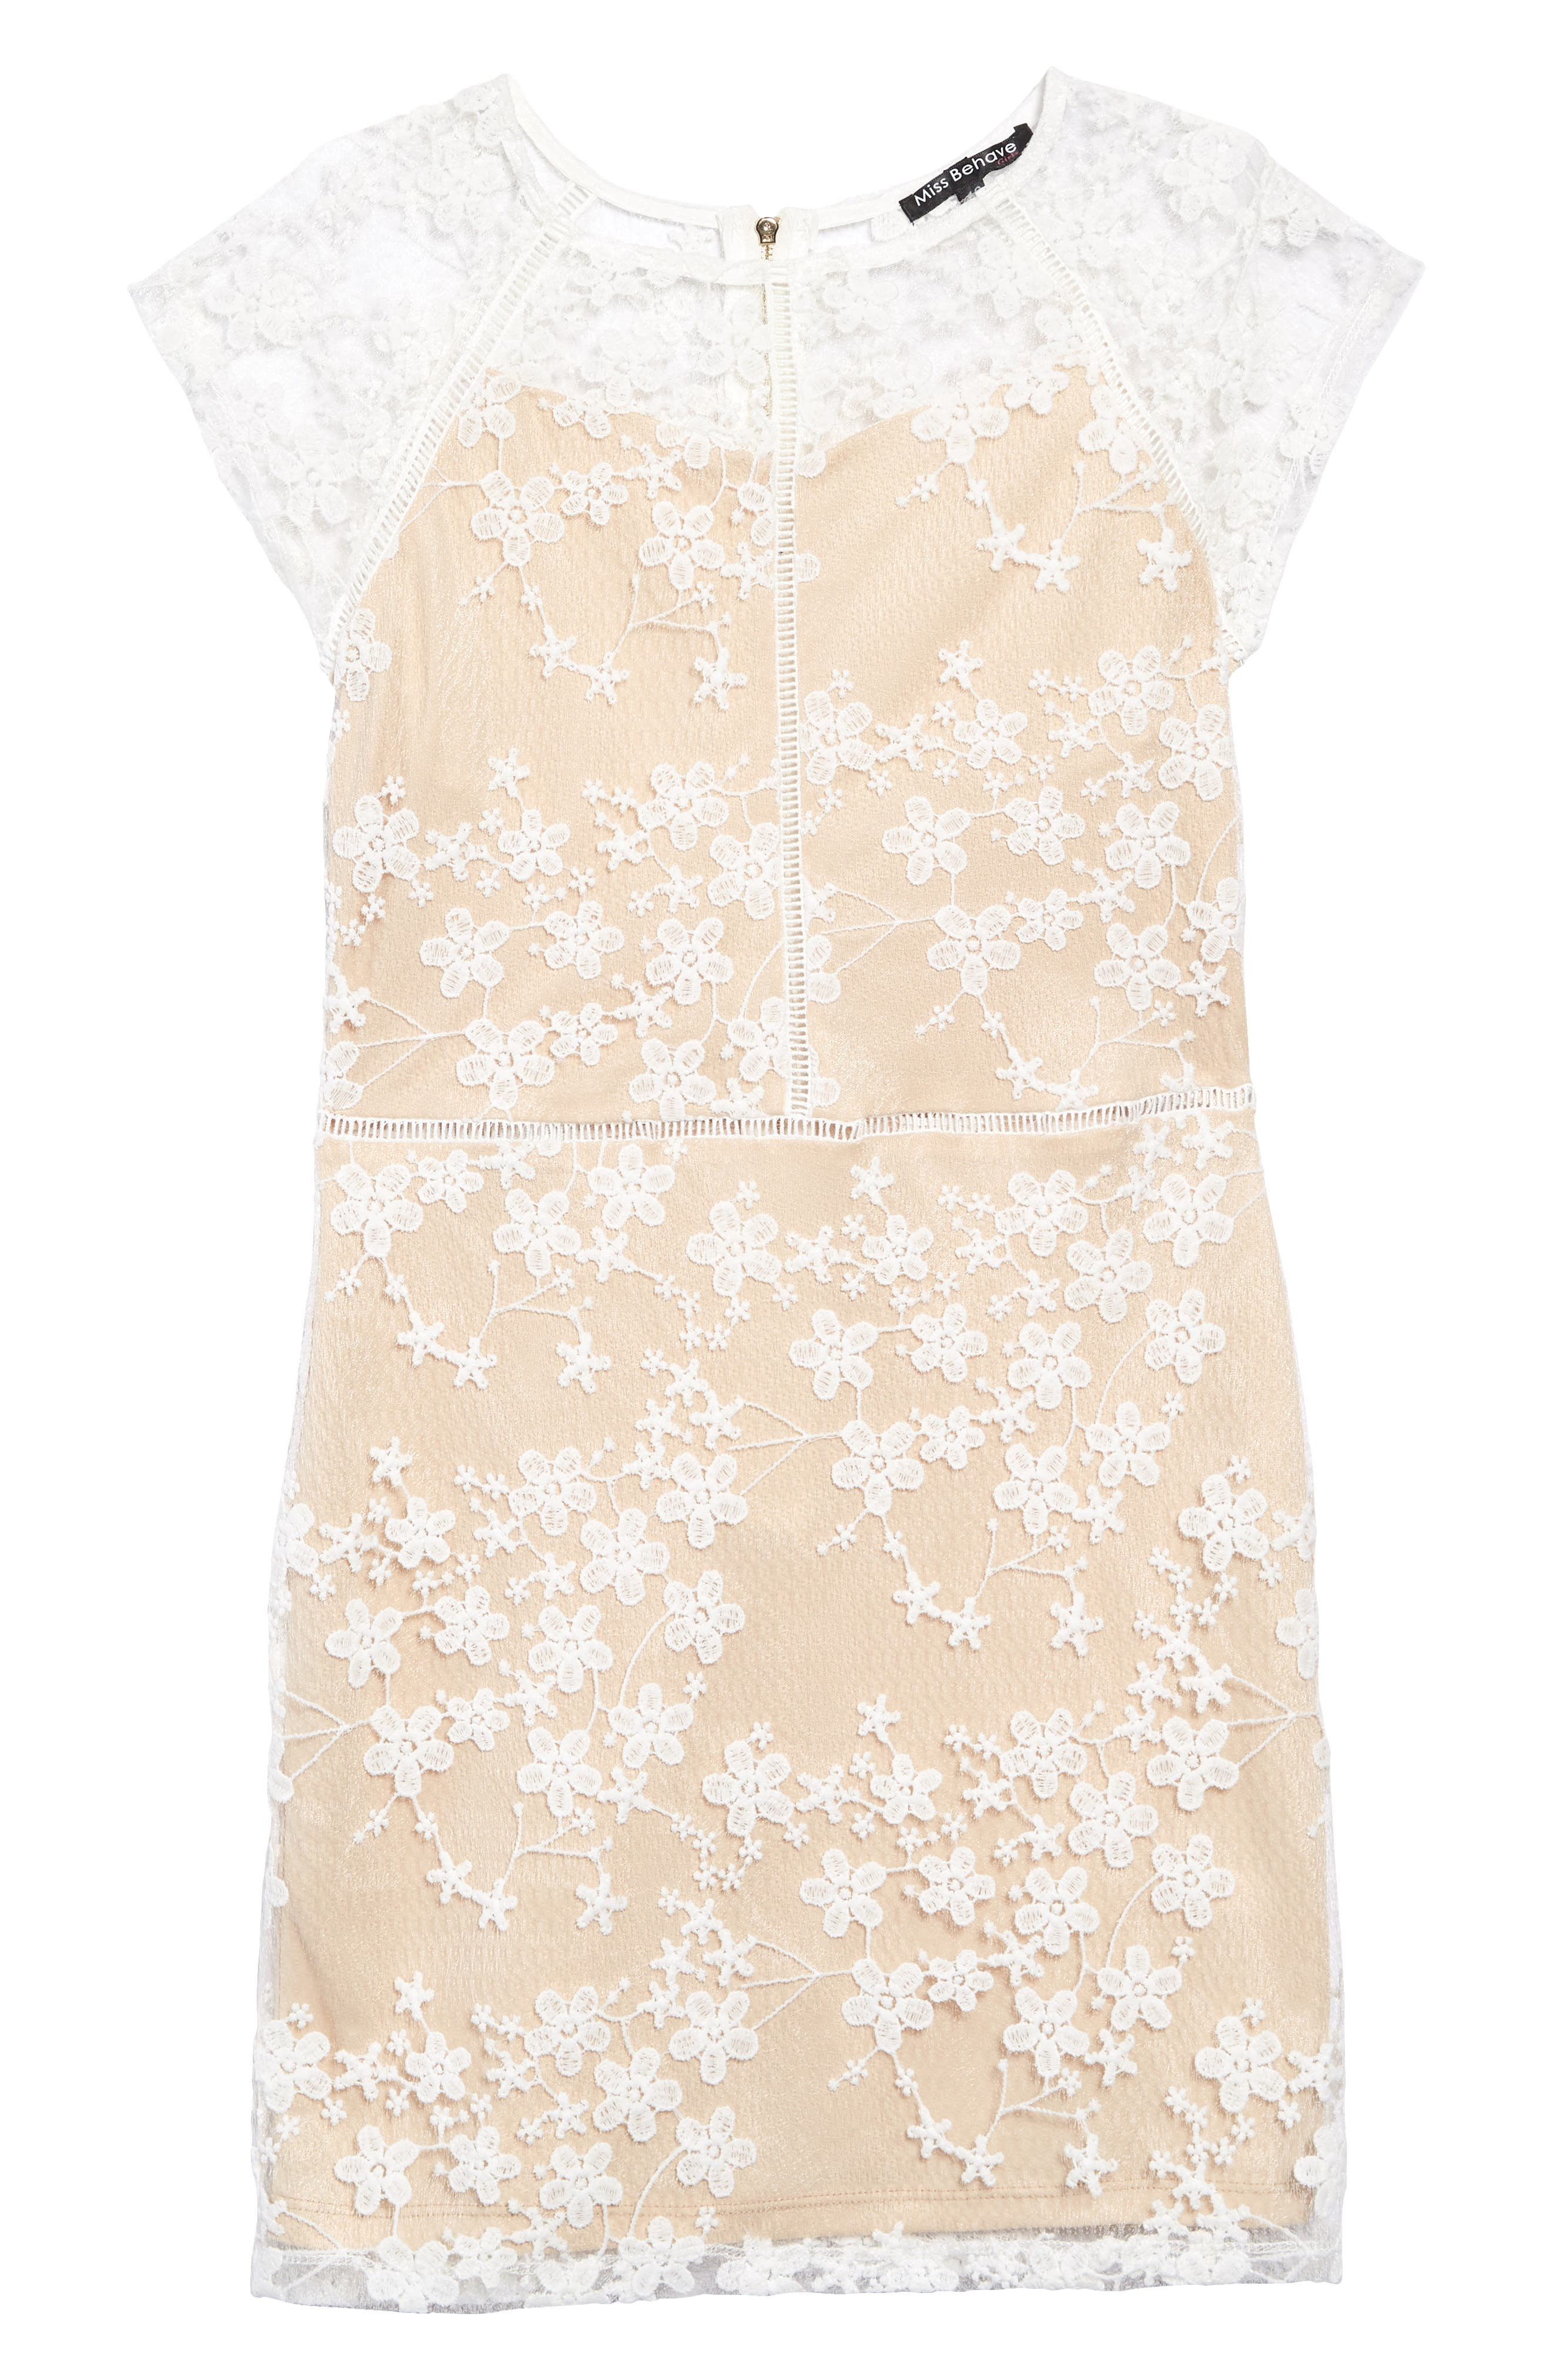 MISS BEHAVE Lace Overlay Dress, Main, color, WHITE/ NUDE